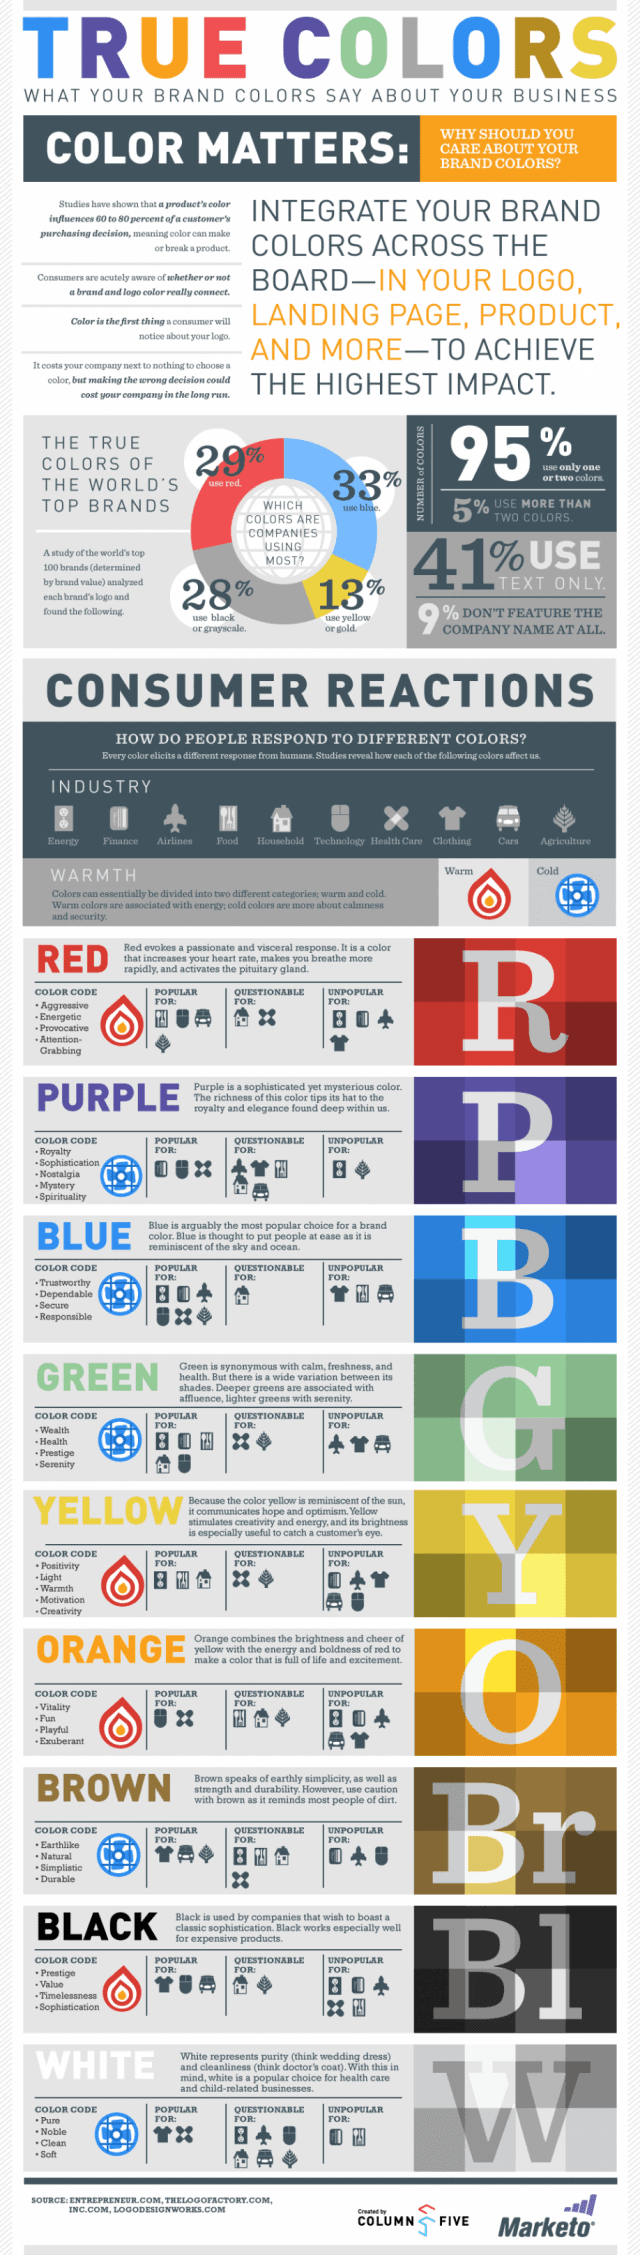 True Colors, Branded Colors [infographic]